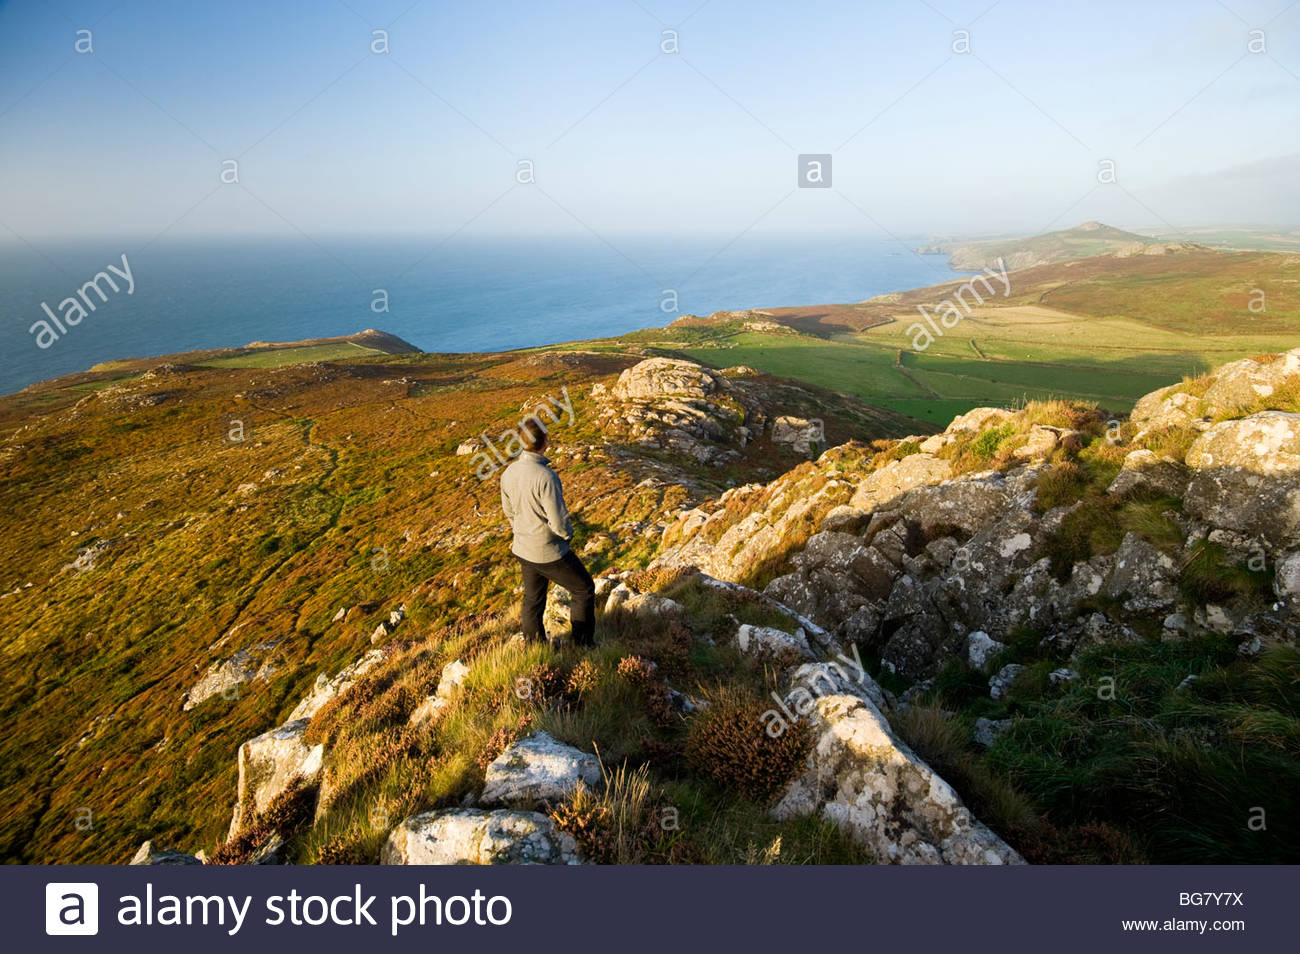 Walker looking North East from the summit of Carn Llidi, Pembrokeshire, South Wales. - Stock Image